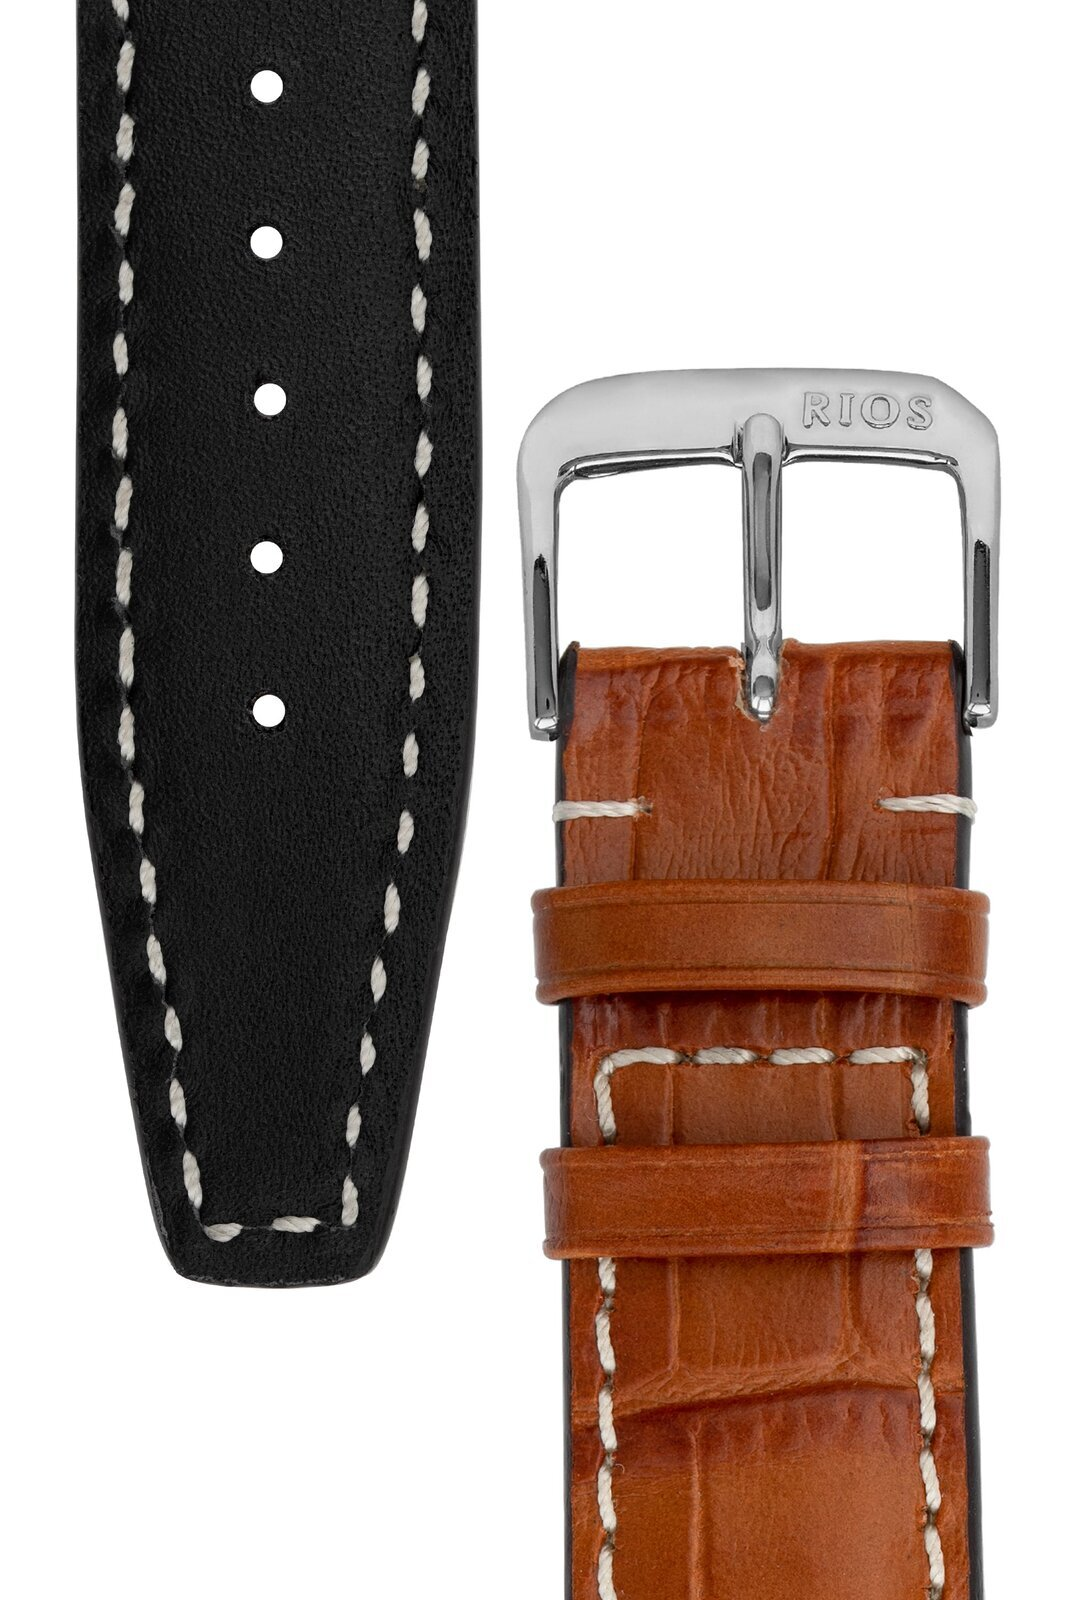 20mm Rios1931 BOSTON Alligator-Embossed Leather Watch Strap in COGNAC